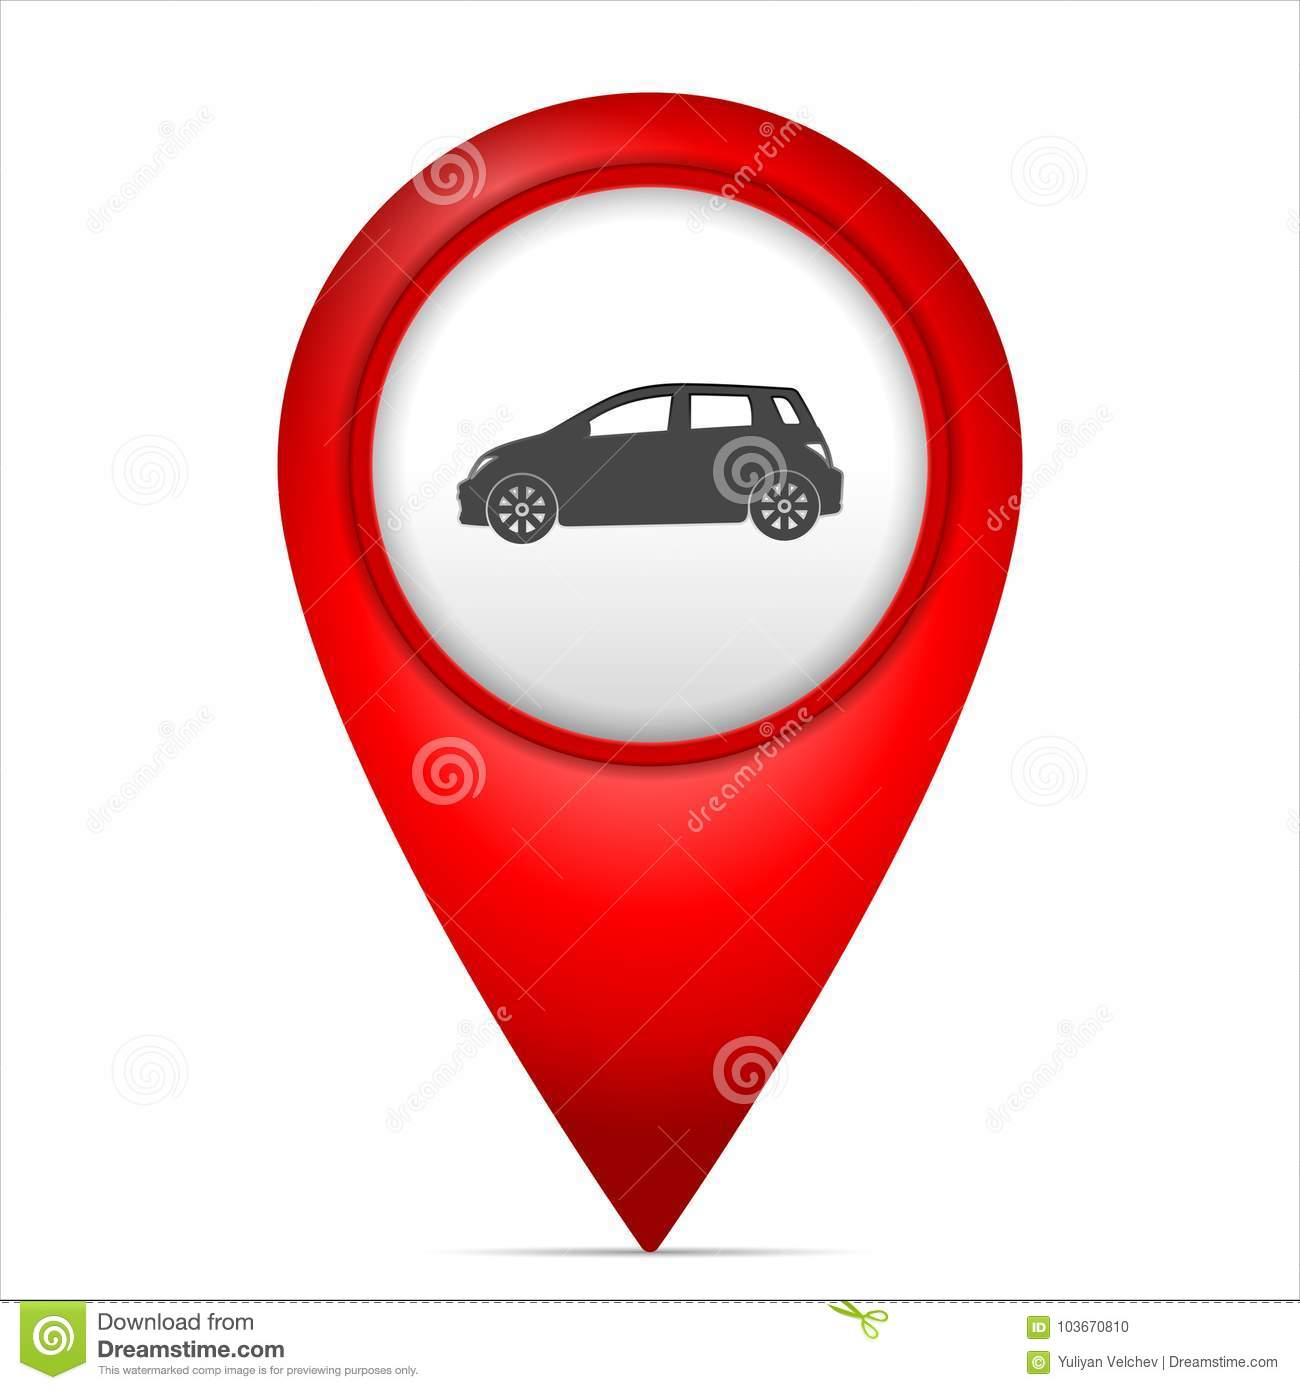 Map Marker With Car Symbol Stock Vector Illustration Of Travel